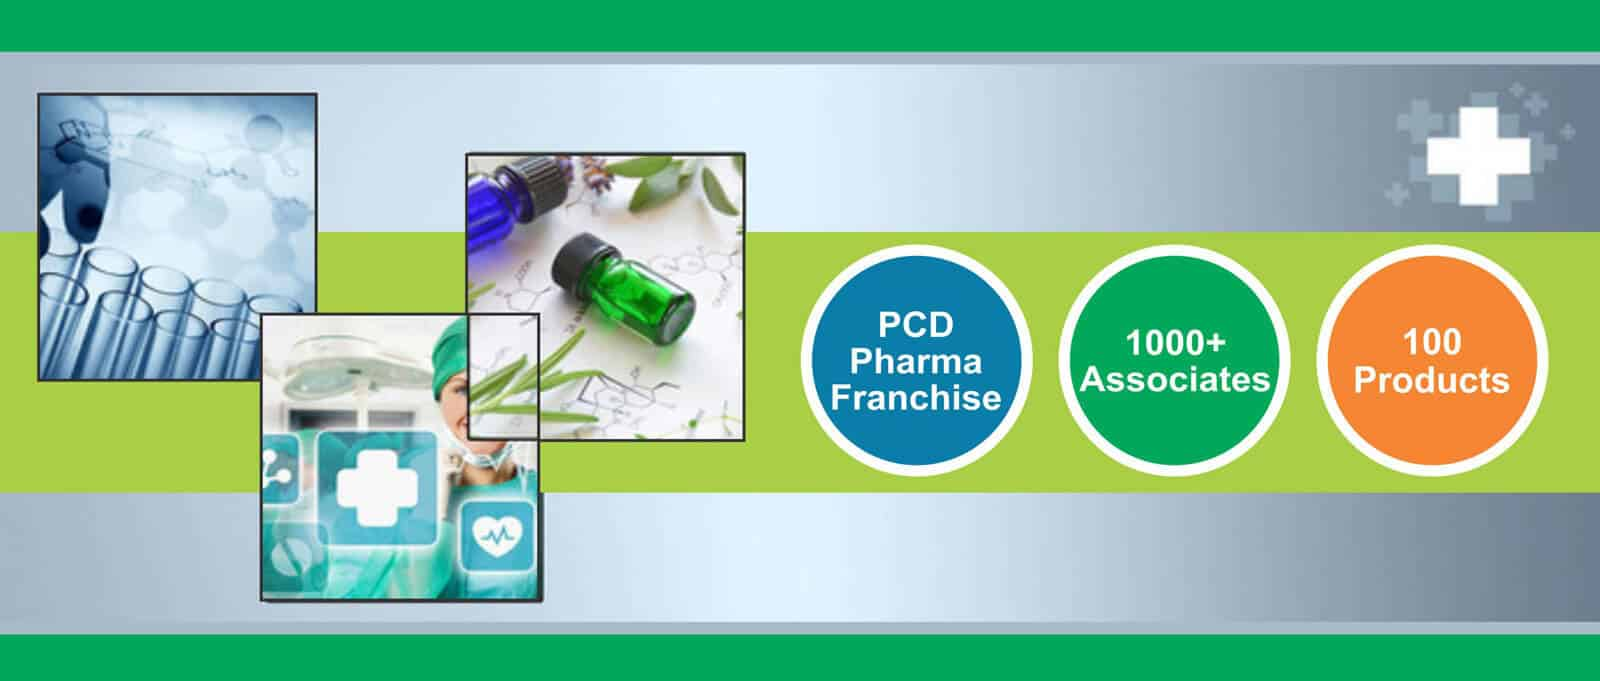 Attract PCD Pharma Franchise Distributors